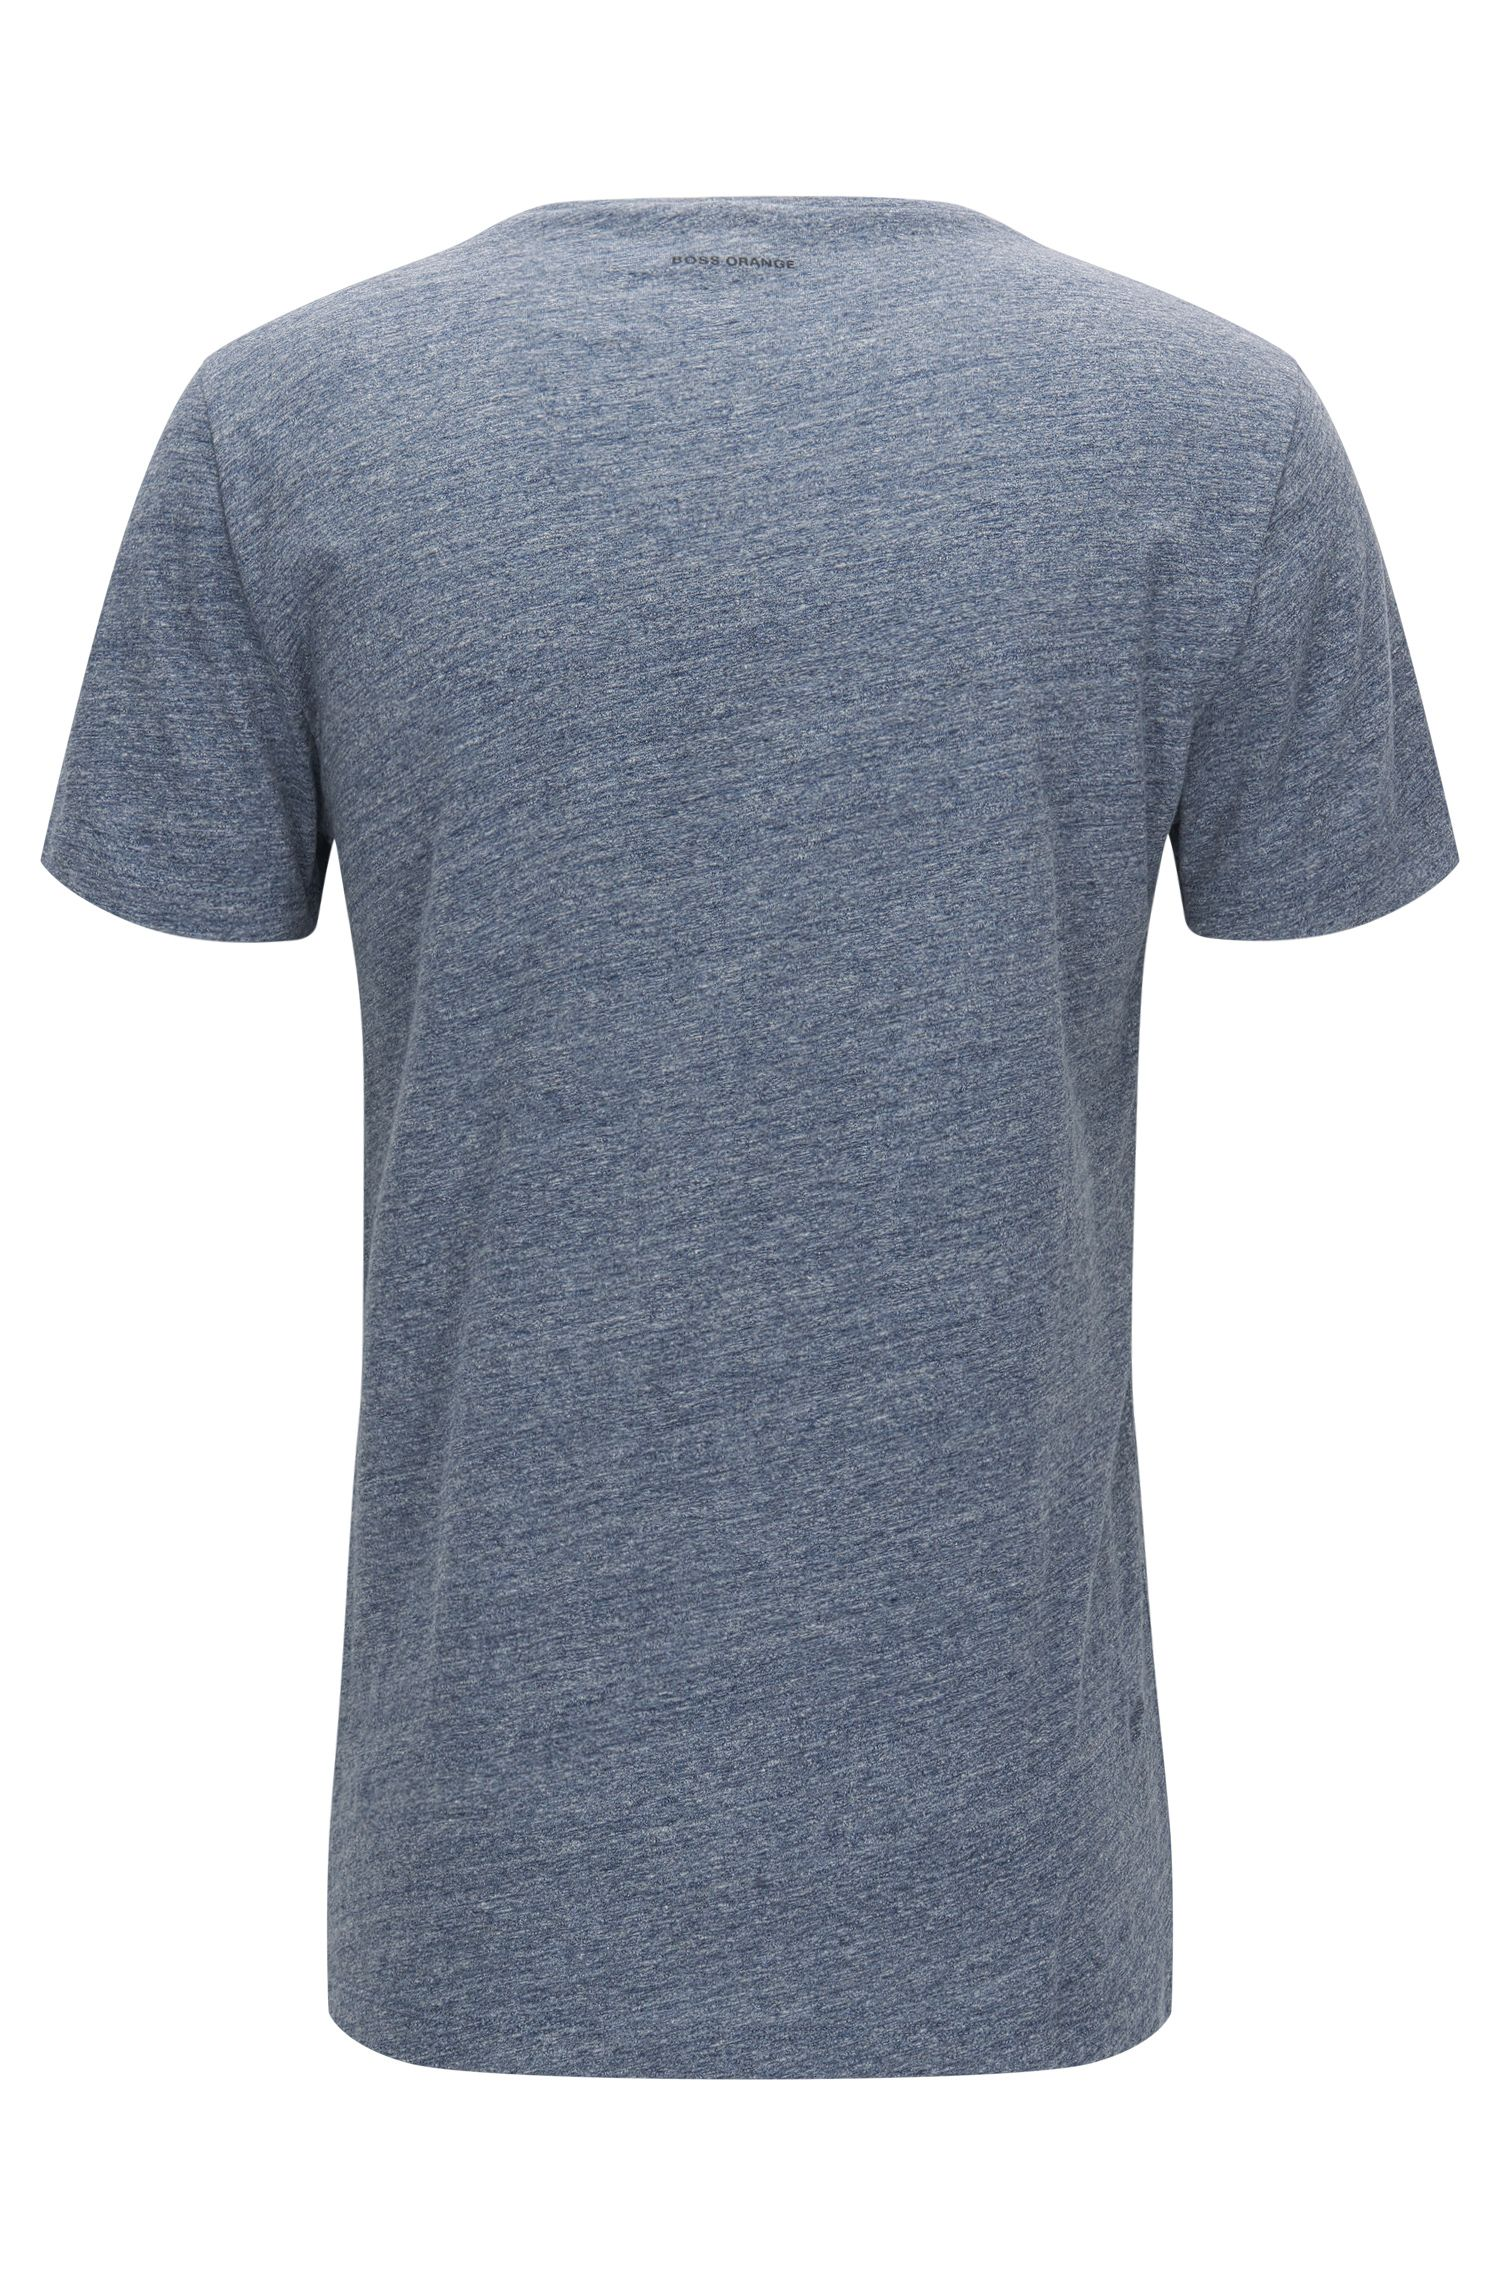 Heathered Cotton Jersey Graphic T-Shirt | Touching, Dark Blue